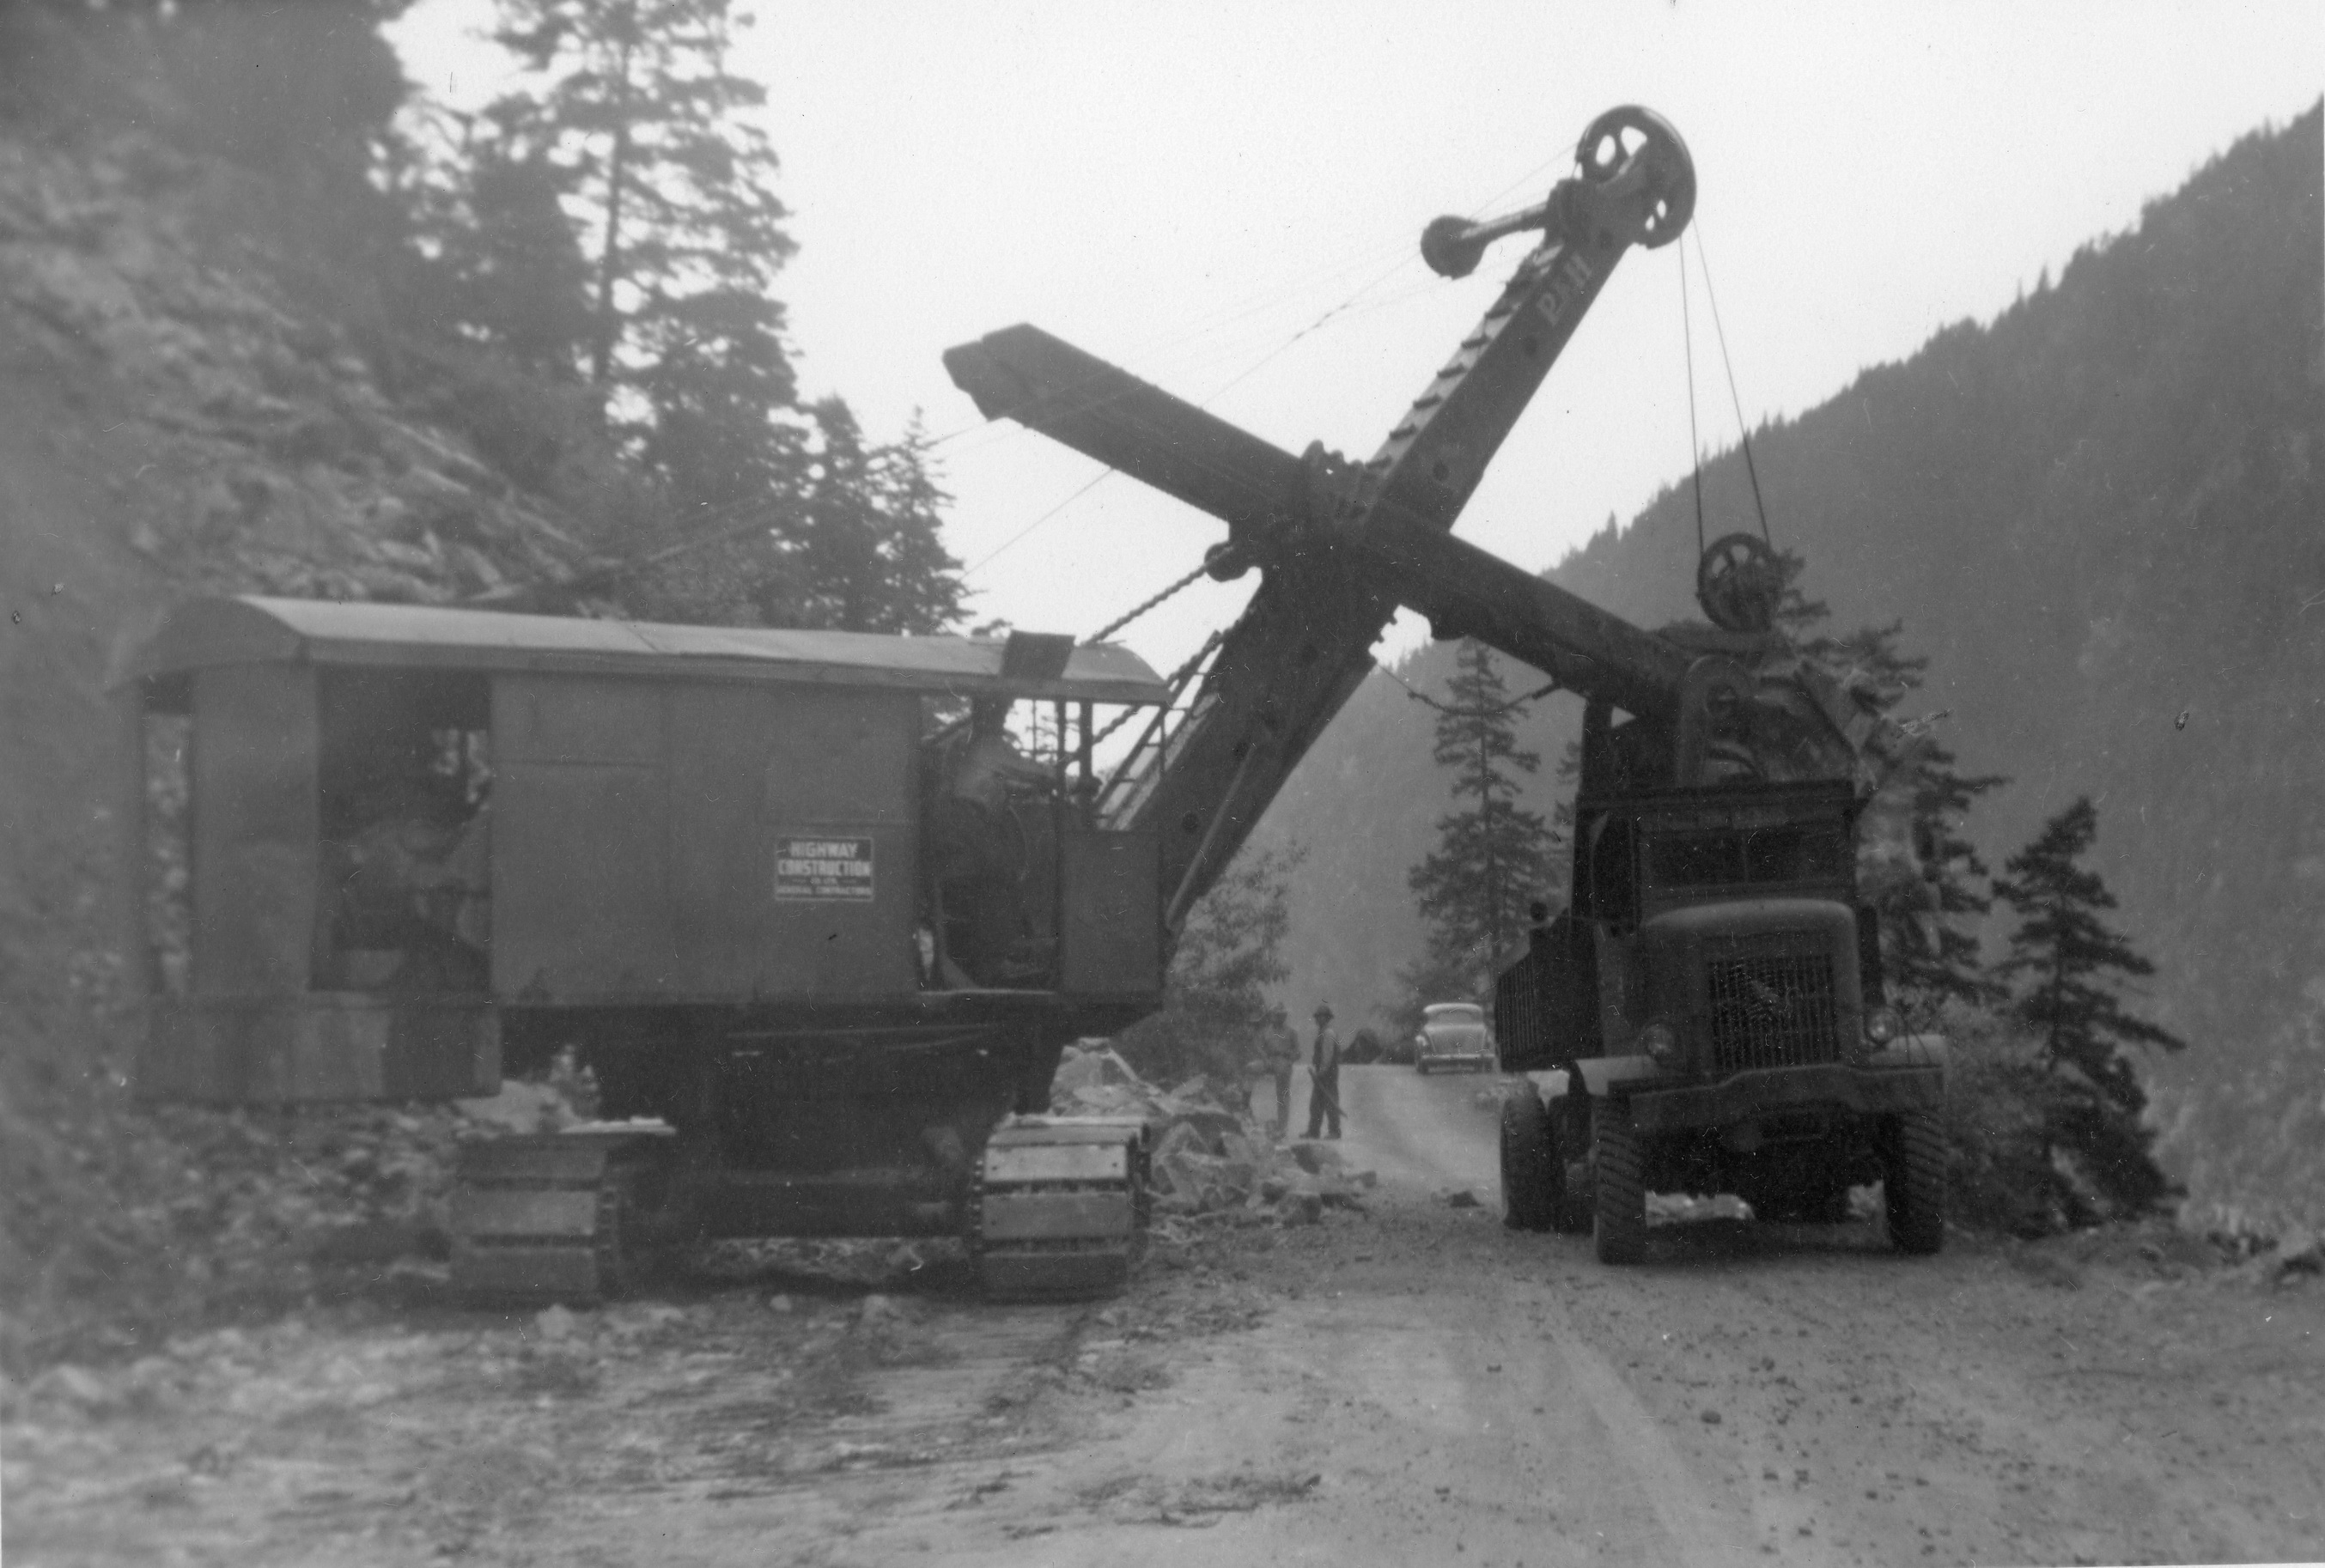 Fraser Canyon Construction machines